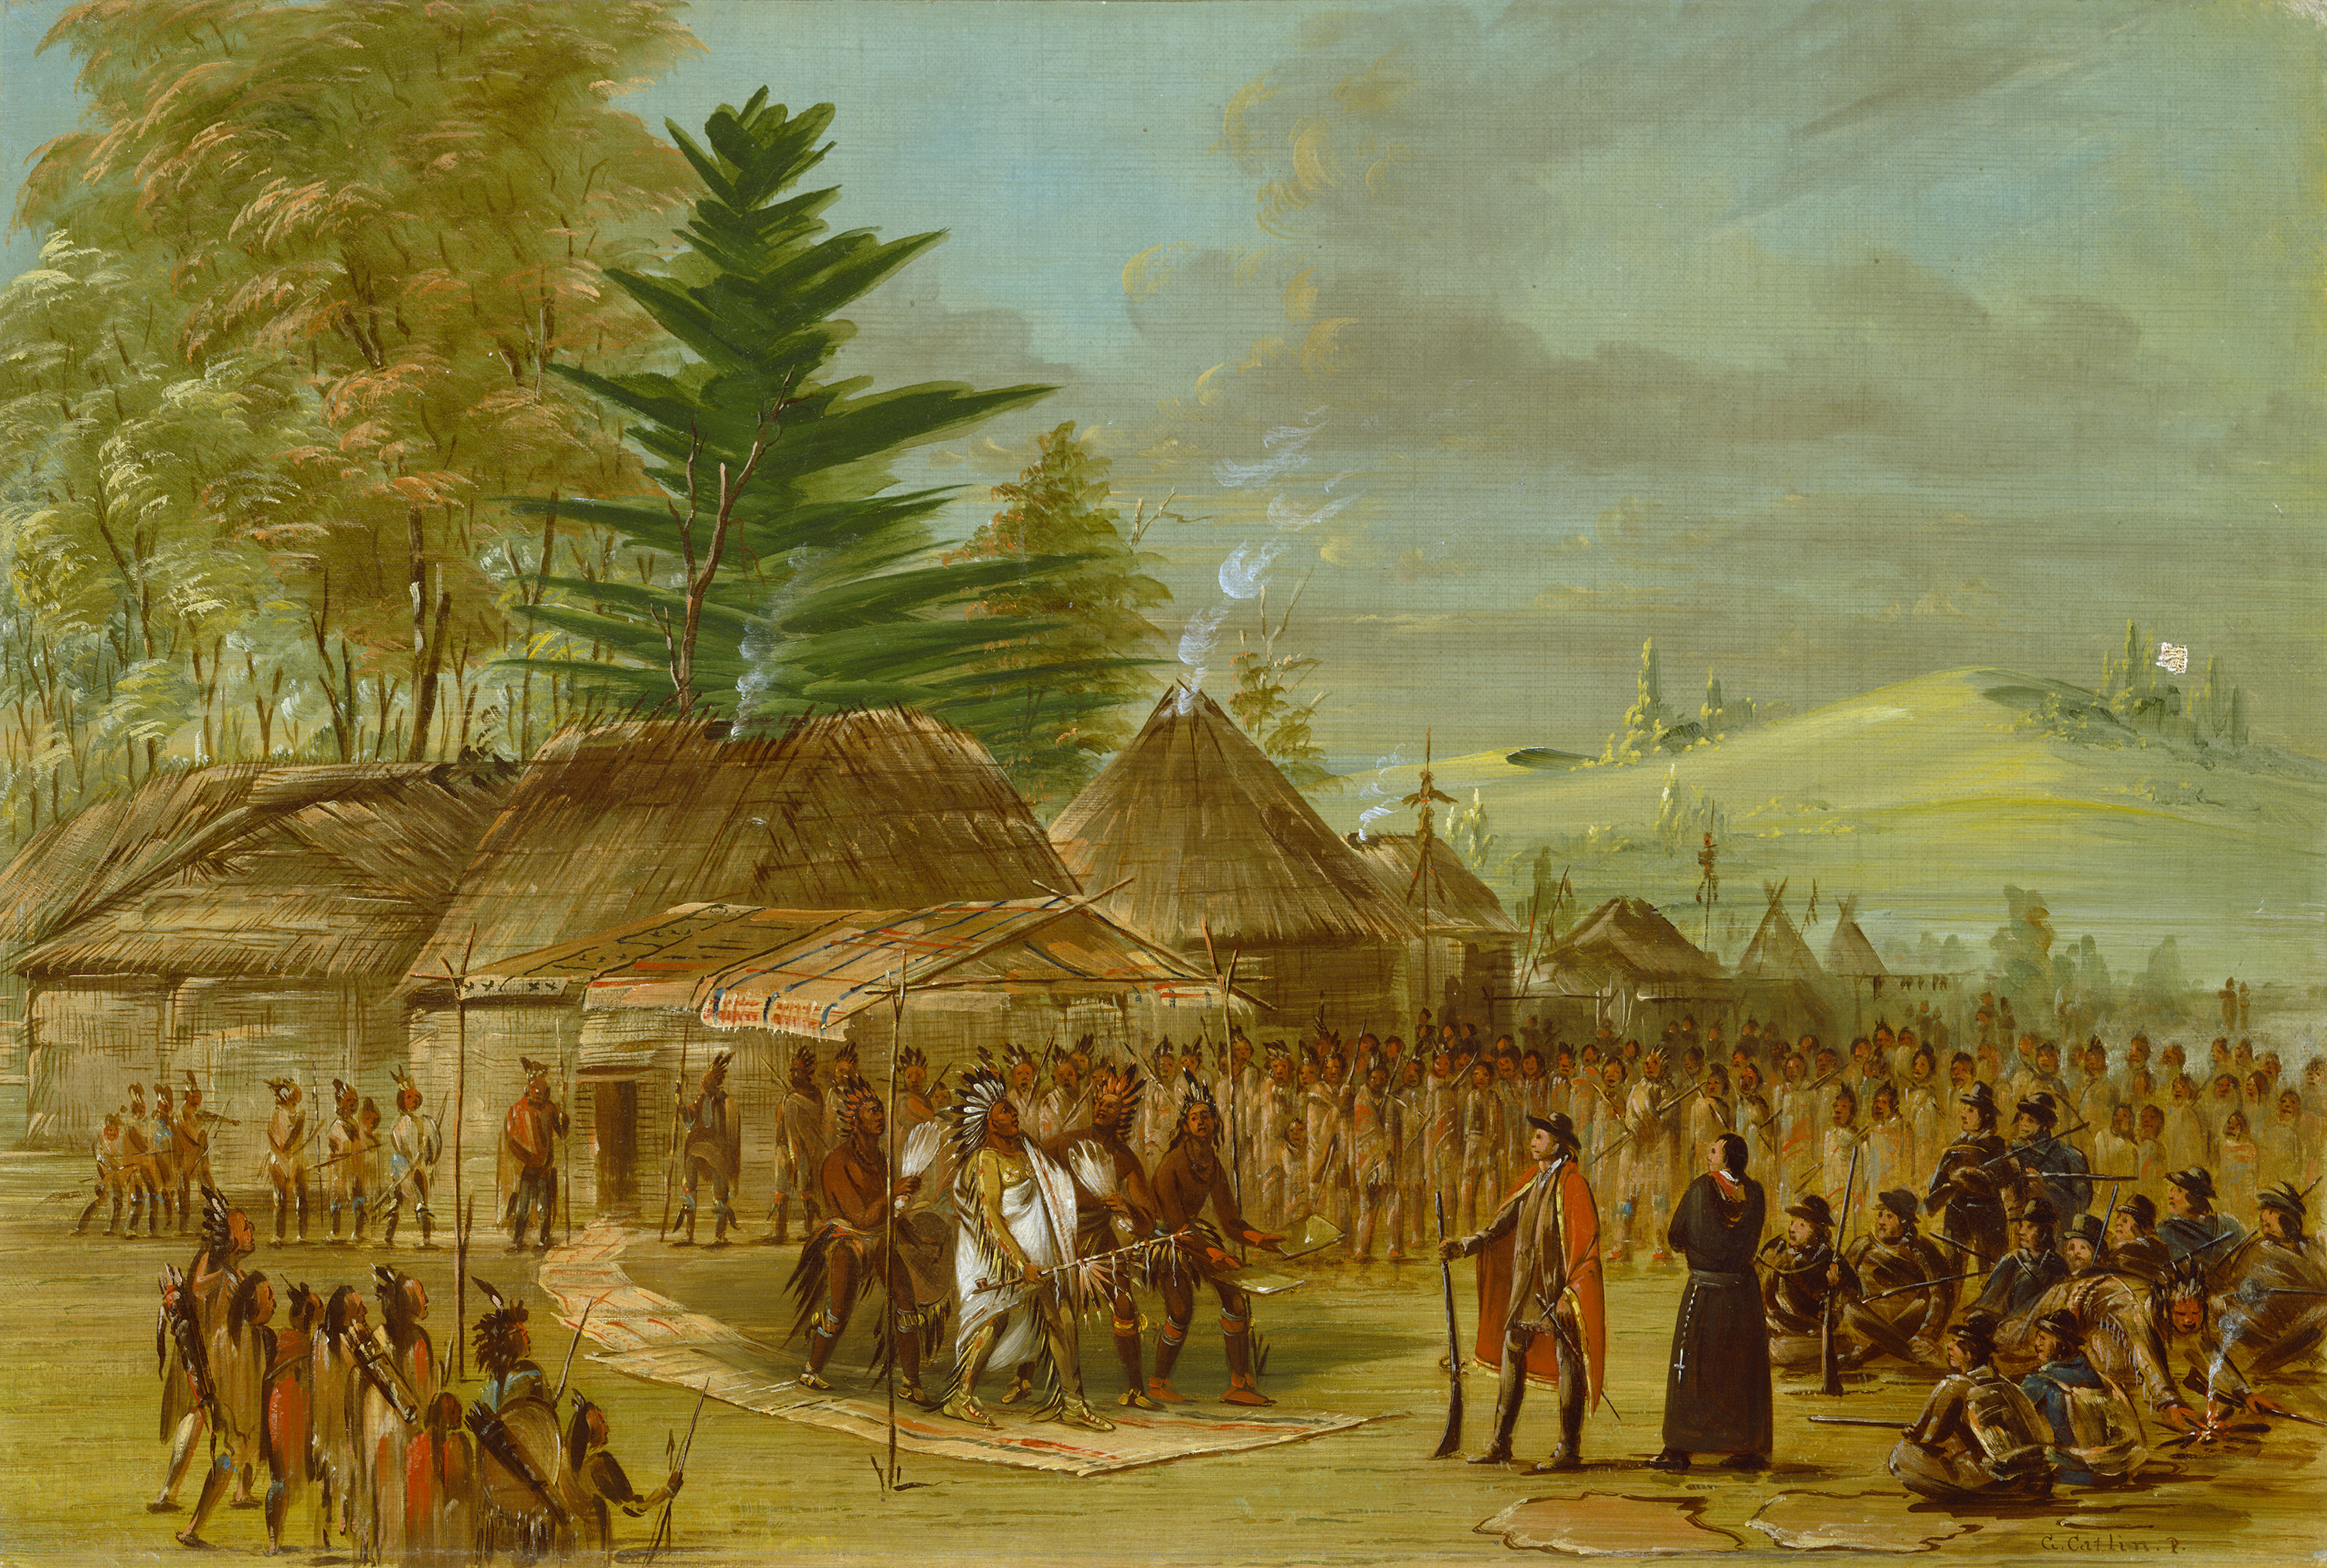 The Tragedies that Befell the Five Civilized Tribes that